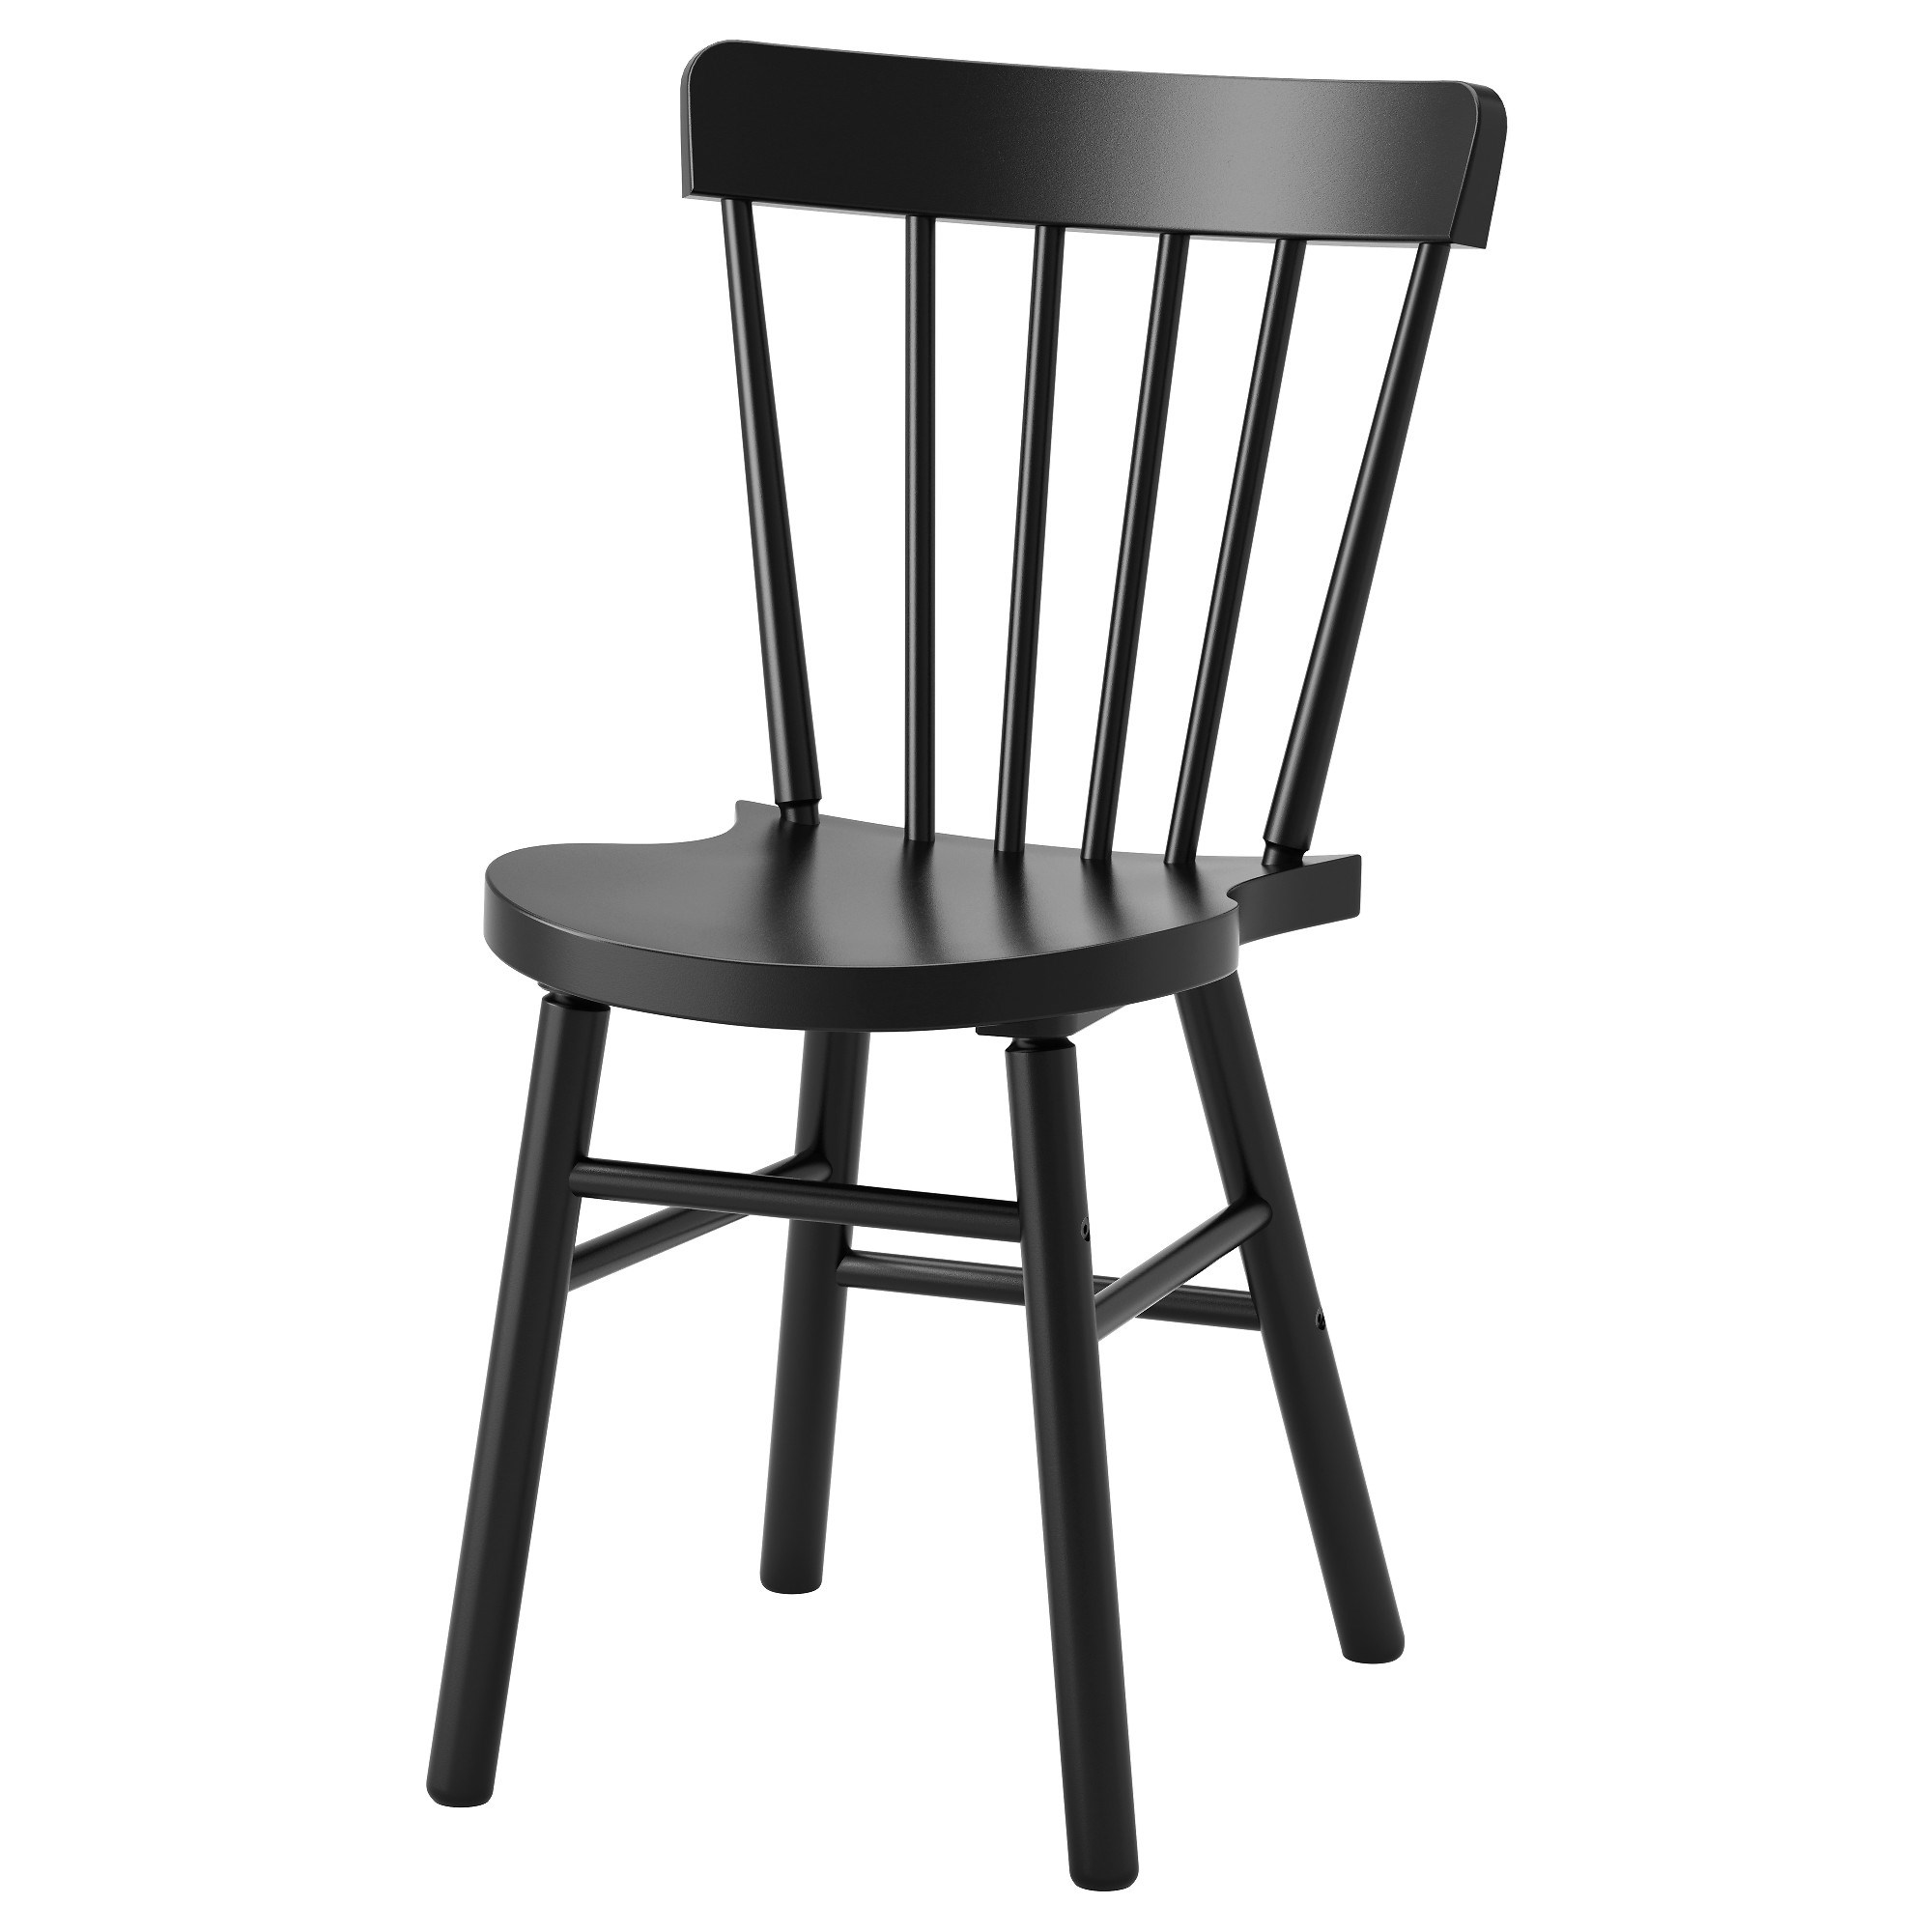 S Shaped Chair Norraryd Chair Black Ikea Kitchen